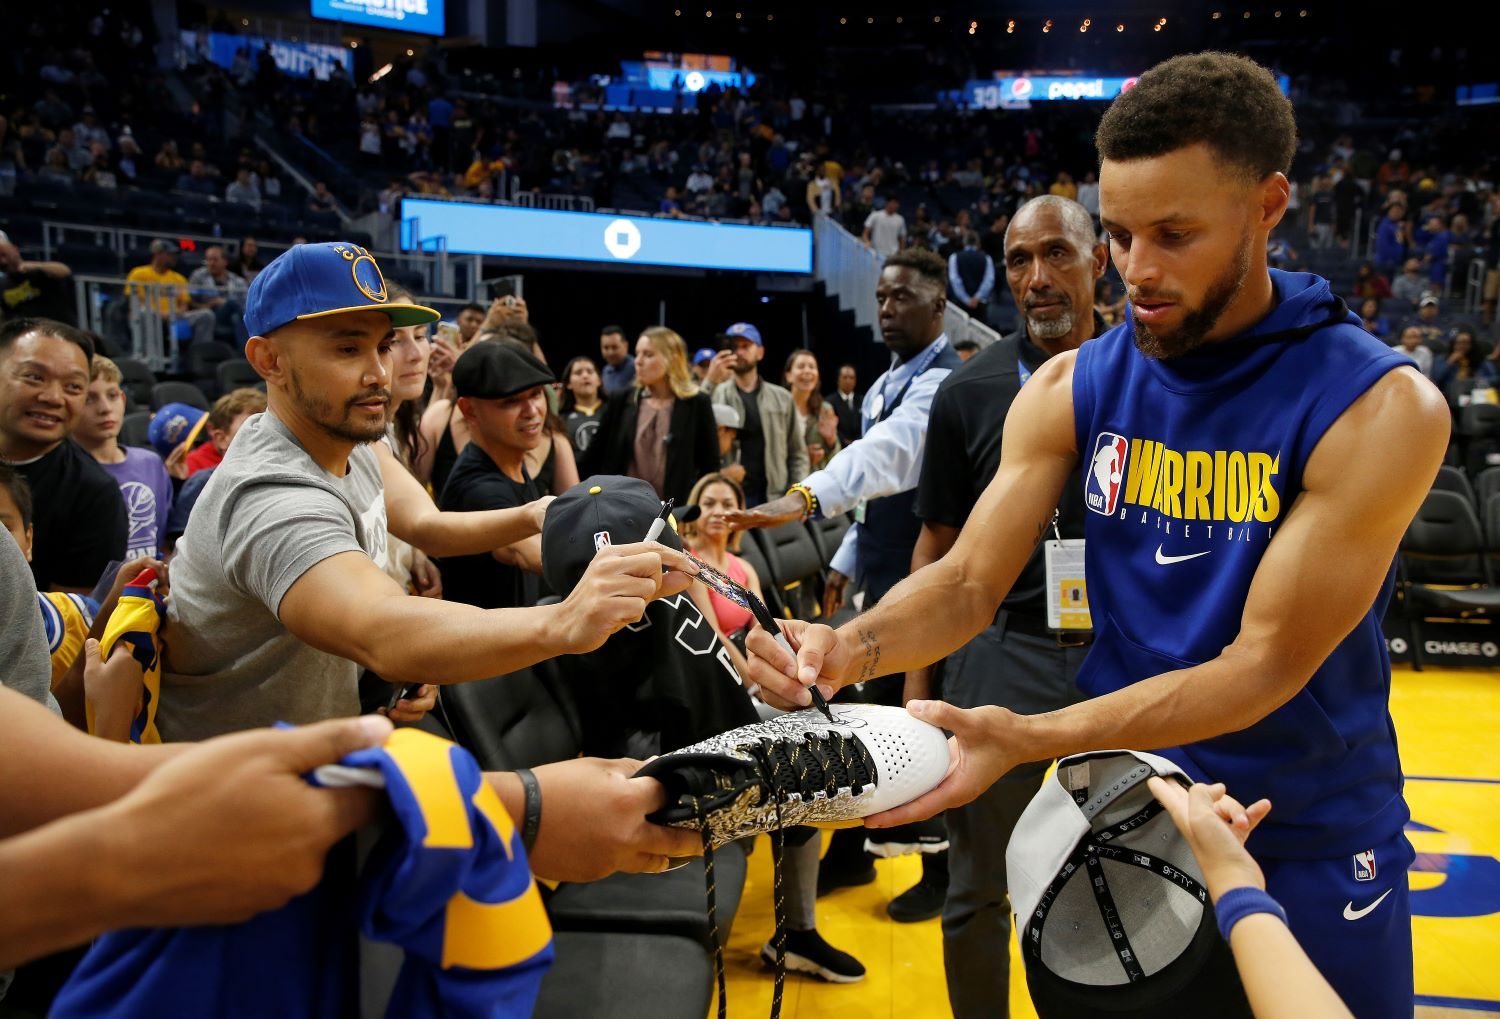 The Golden State Warriors unveiled a $30 million COVID-19 plan that could save the NBA by getting fans back in the stands.